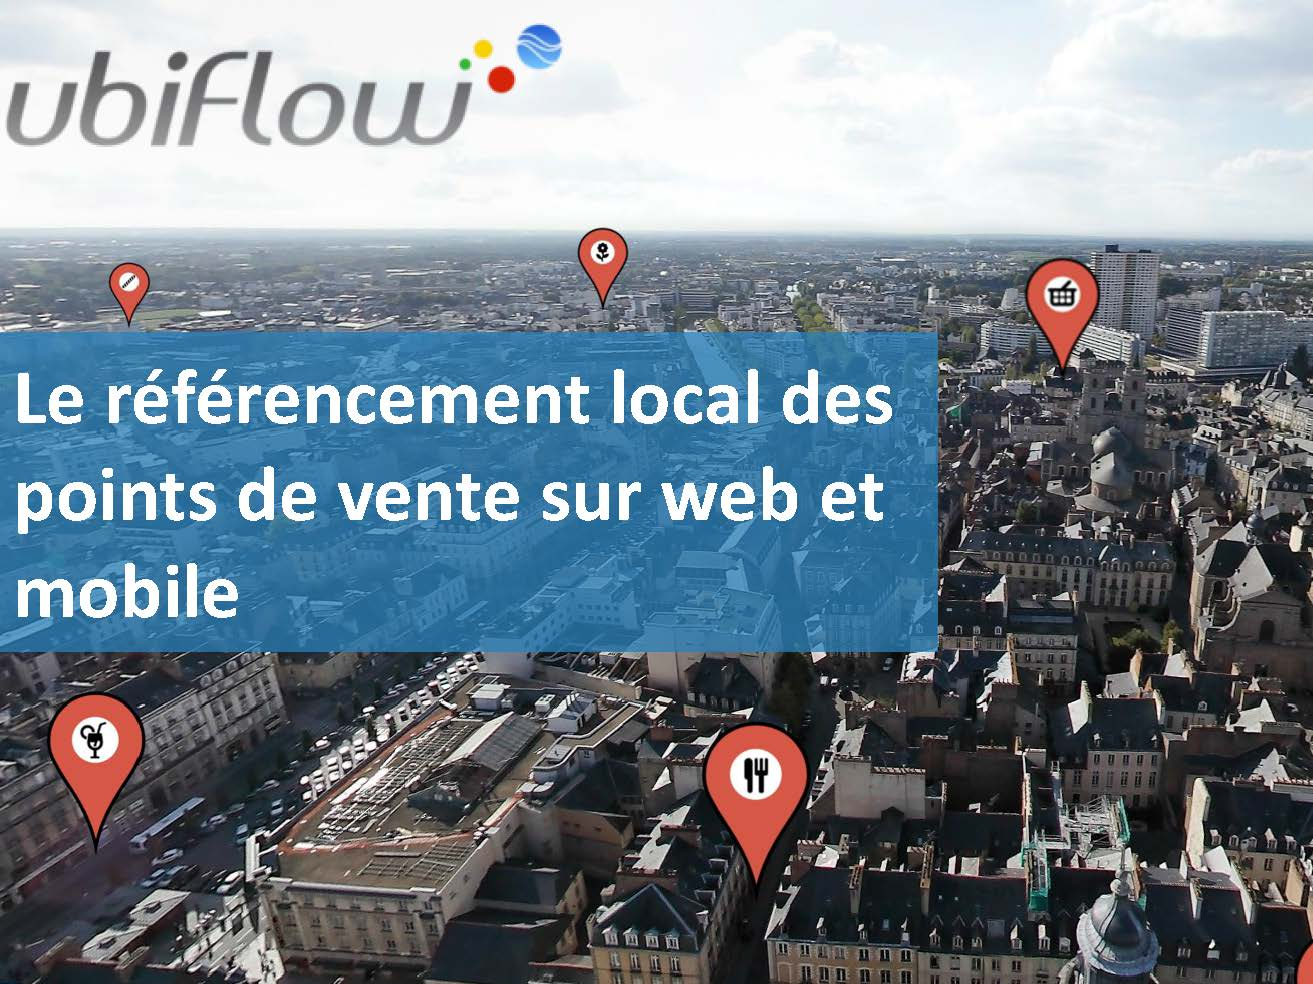 ubiflow referencement local